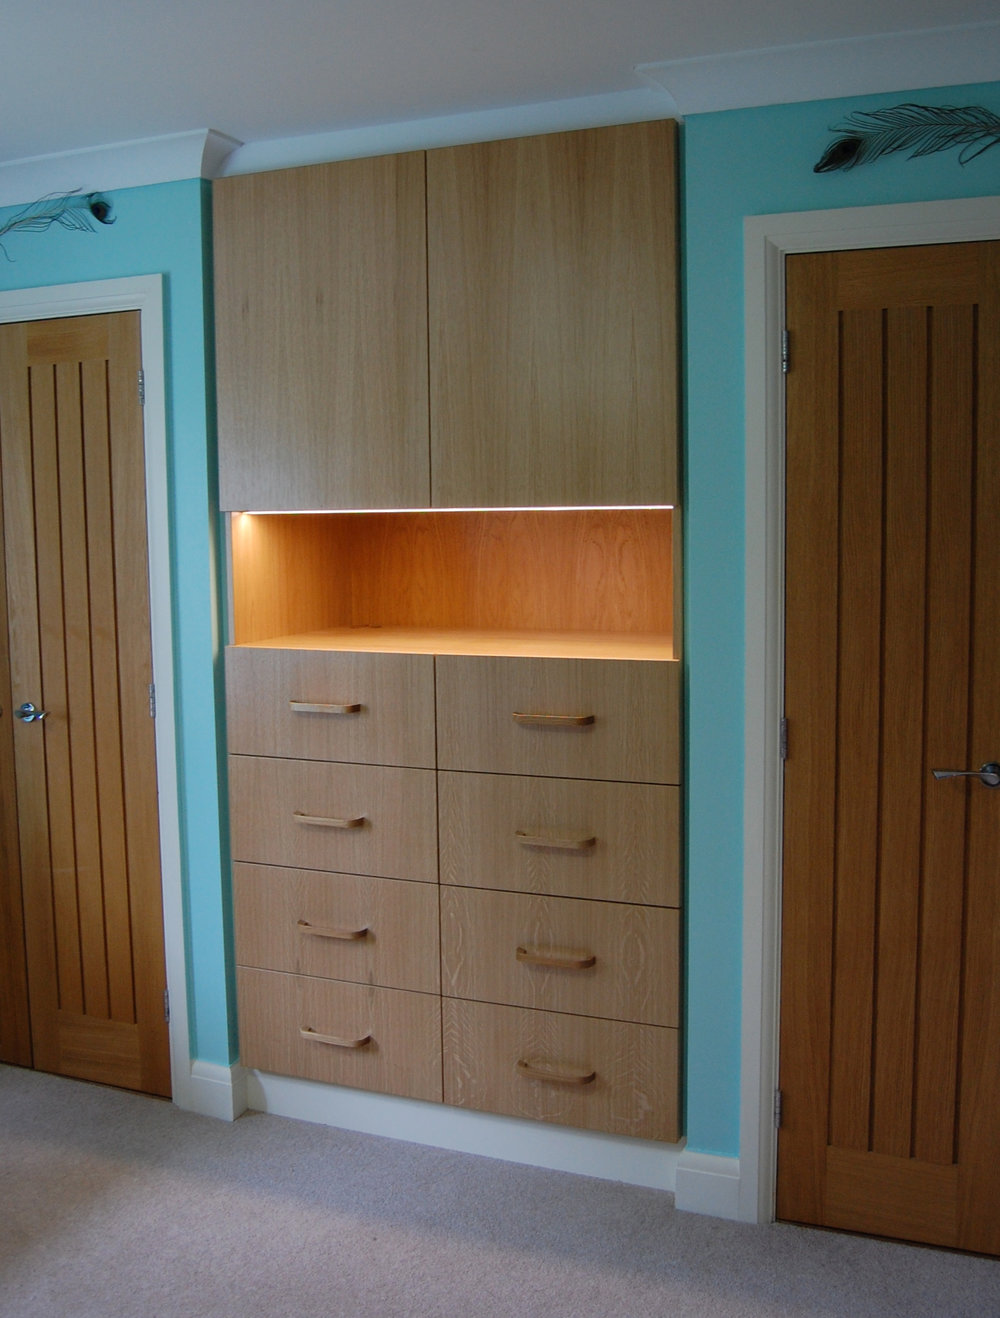 Grain_Bespoke_Furniture_Drawers.jpg